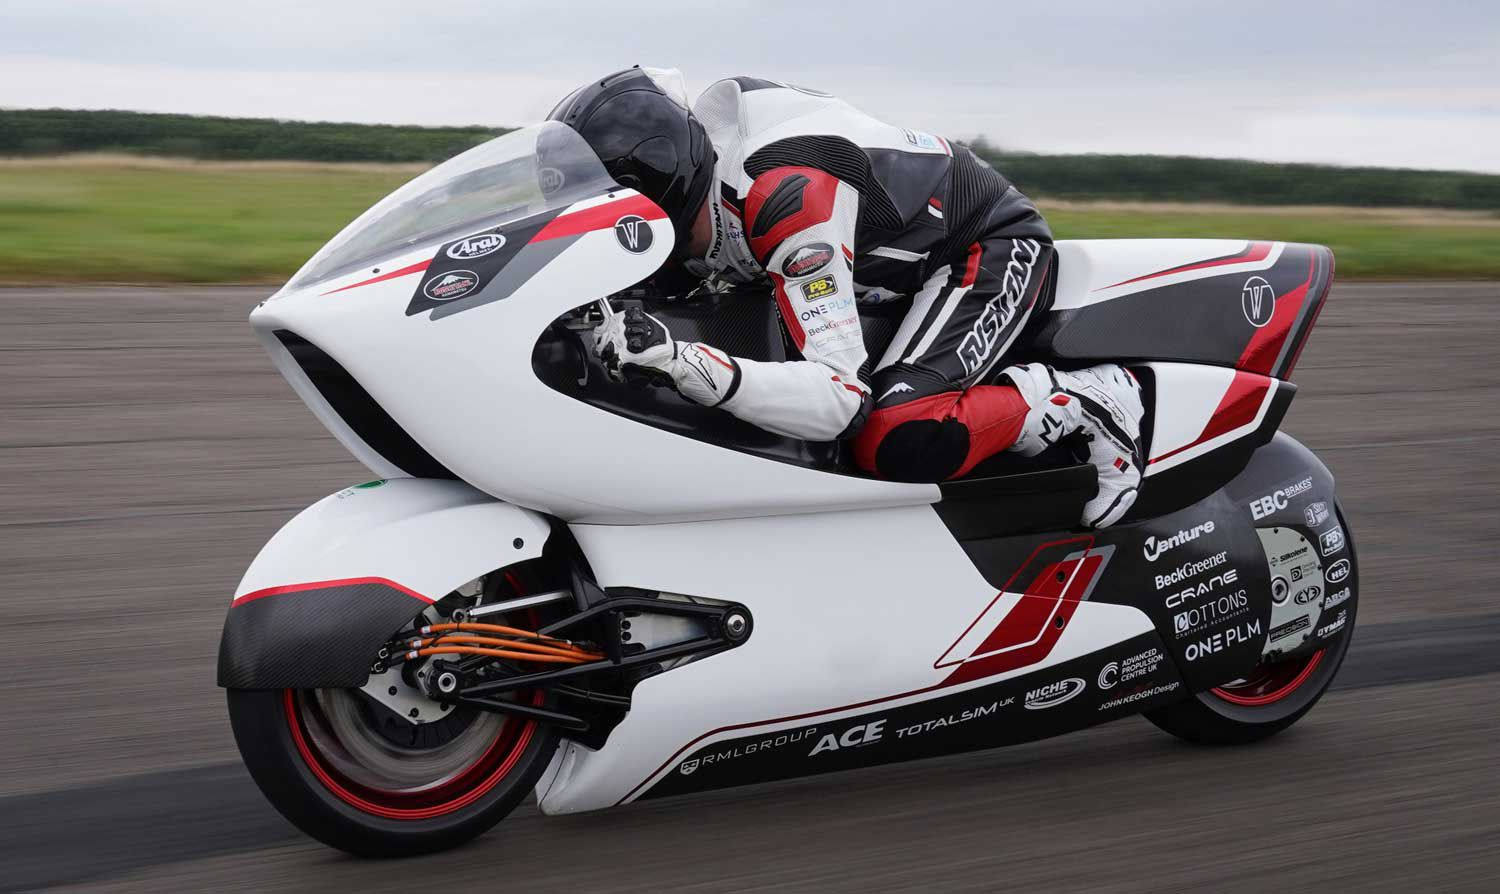 White Motorcycle Concepts' electric land speed racer has completed its initial round of testing to check working systems, and is hitting its speed targets.